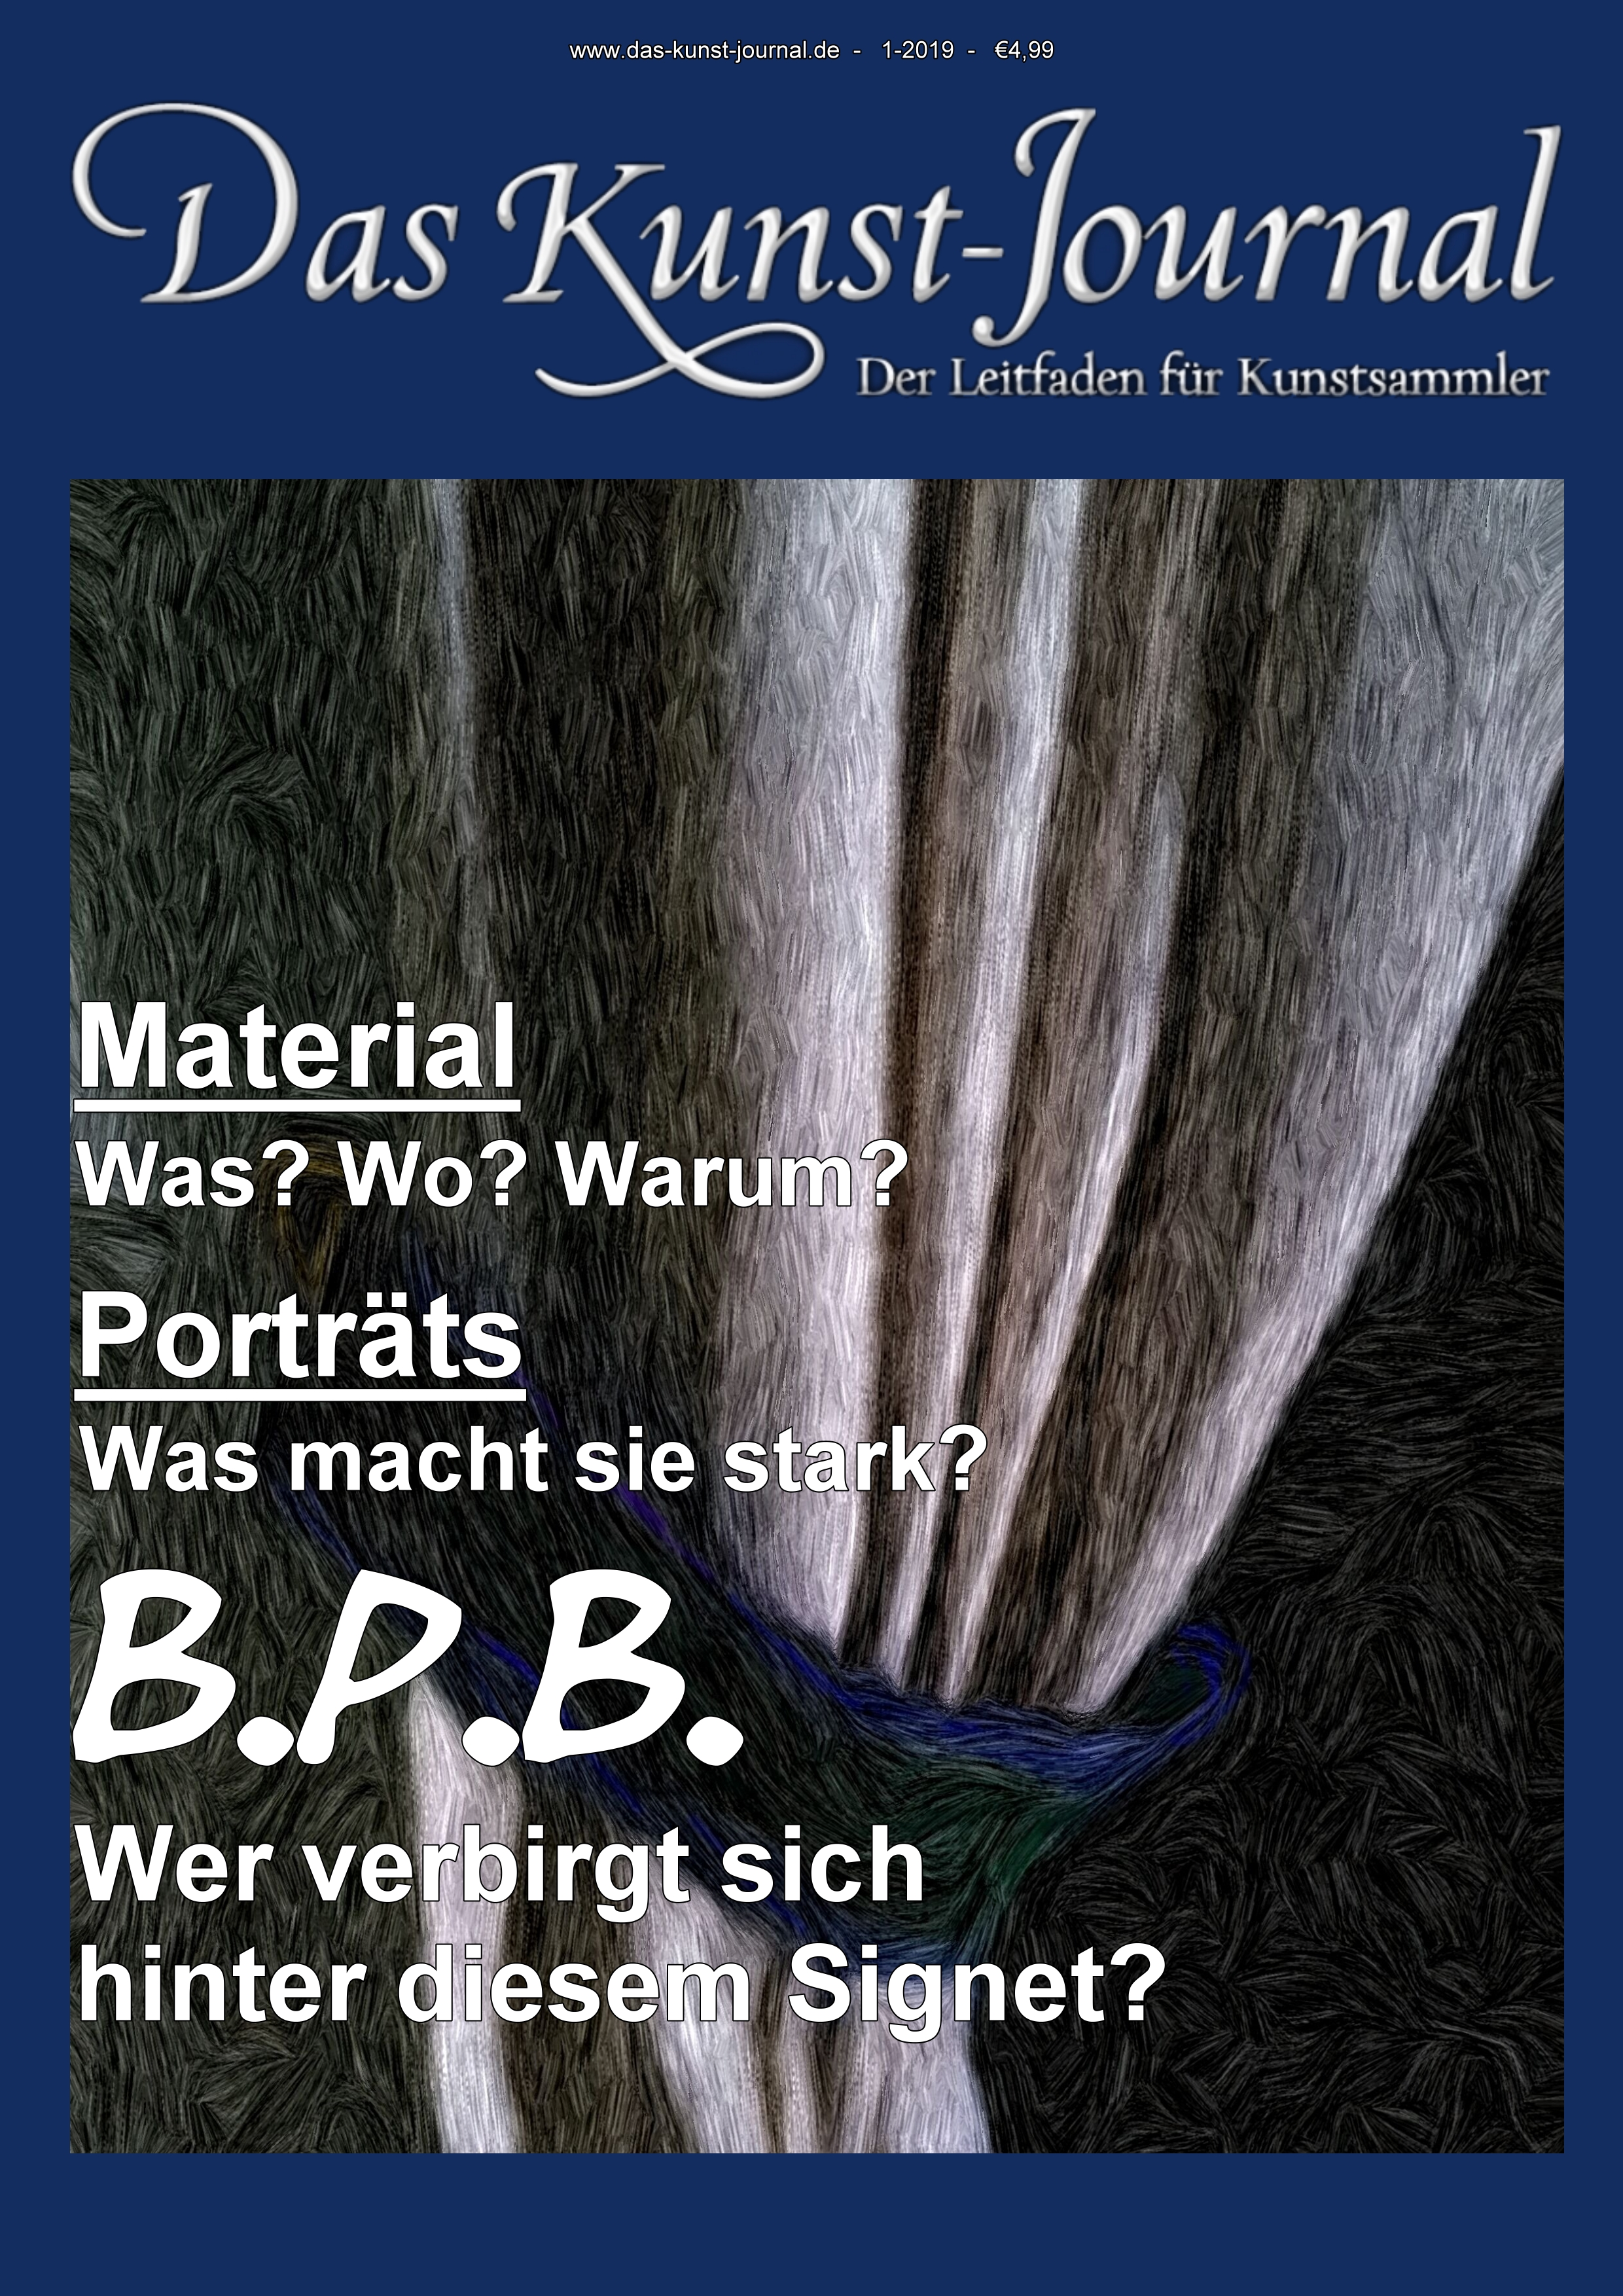 http://das-kunst-journal.de/wp-content/uploads/2019/01/2019-Vorhang-Cover.jpg